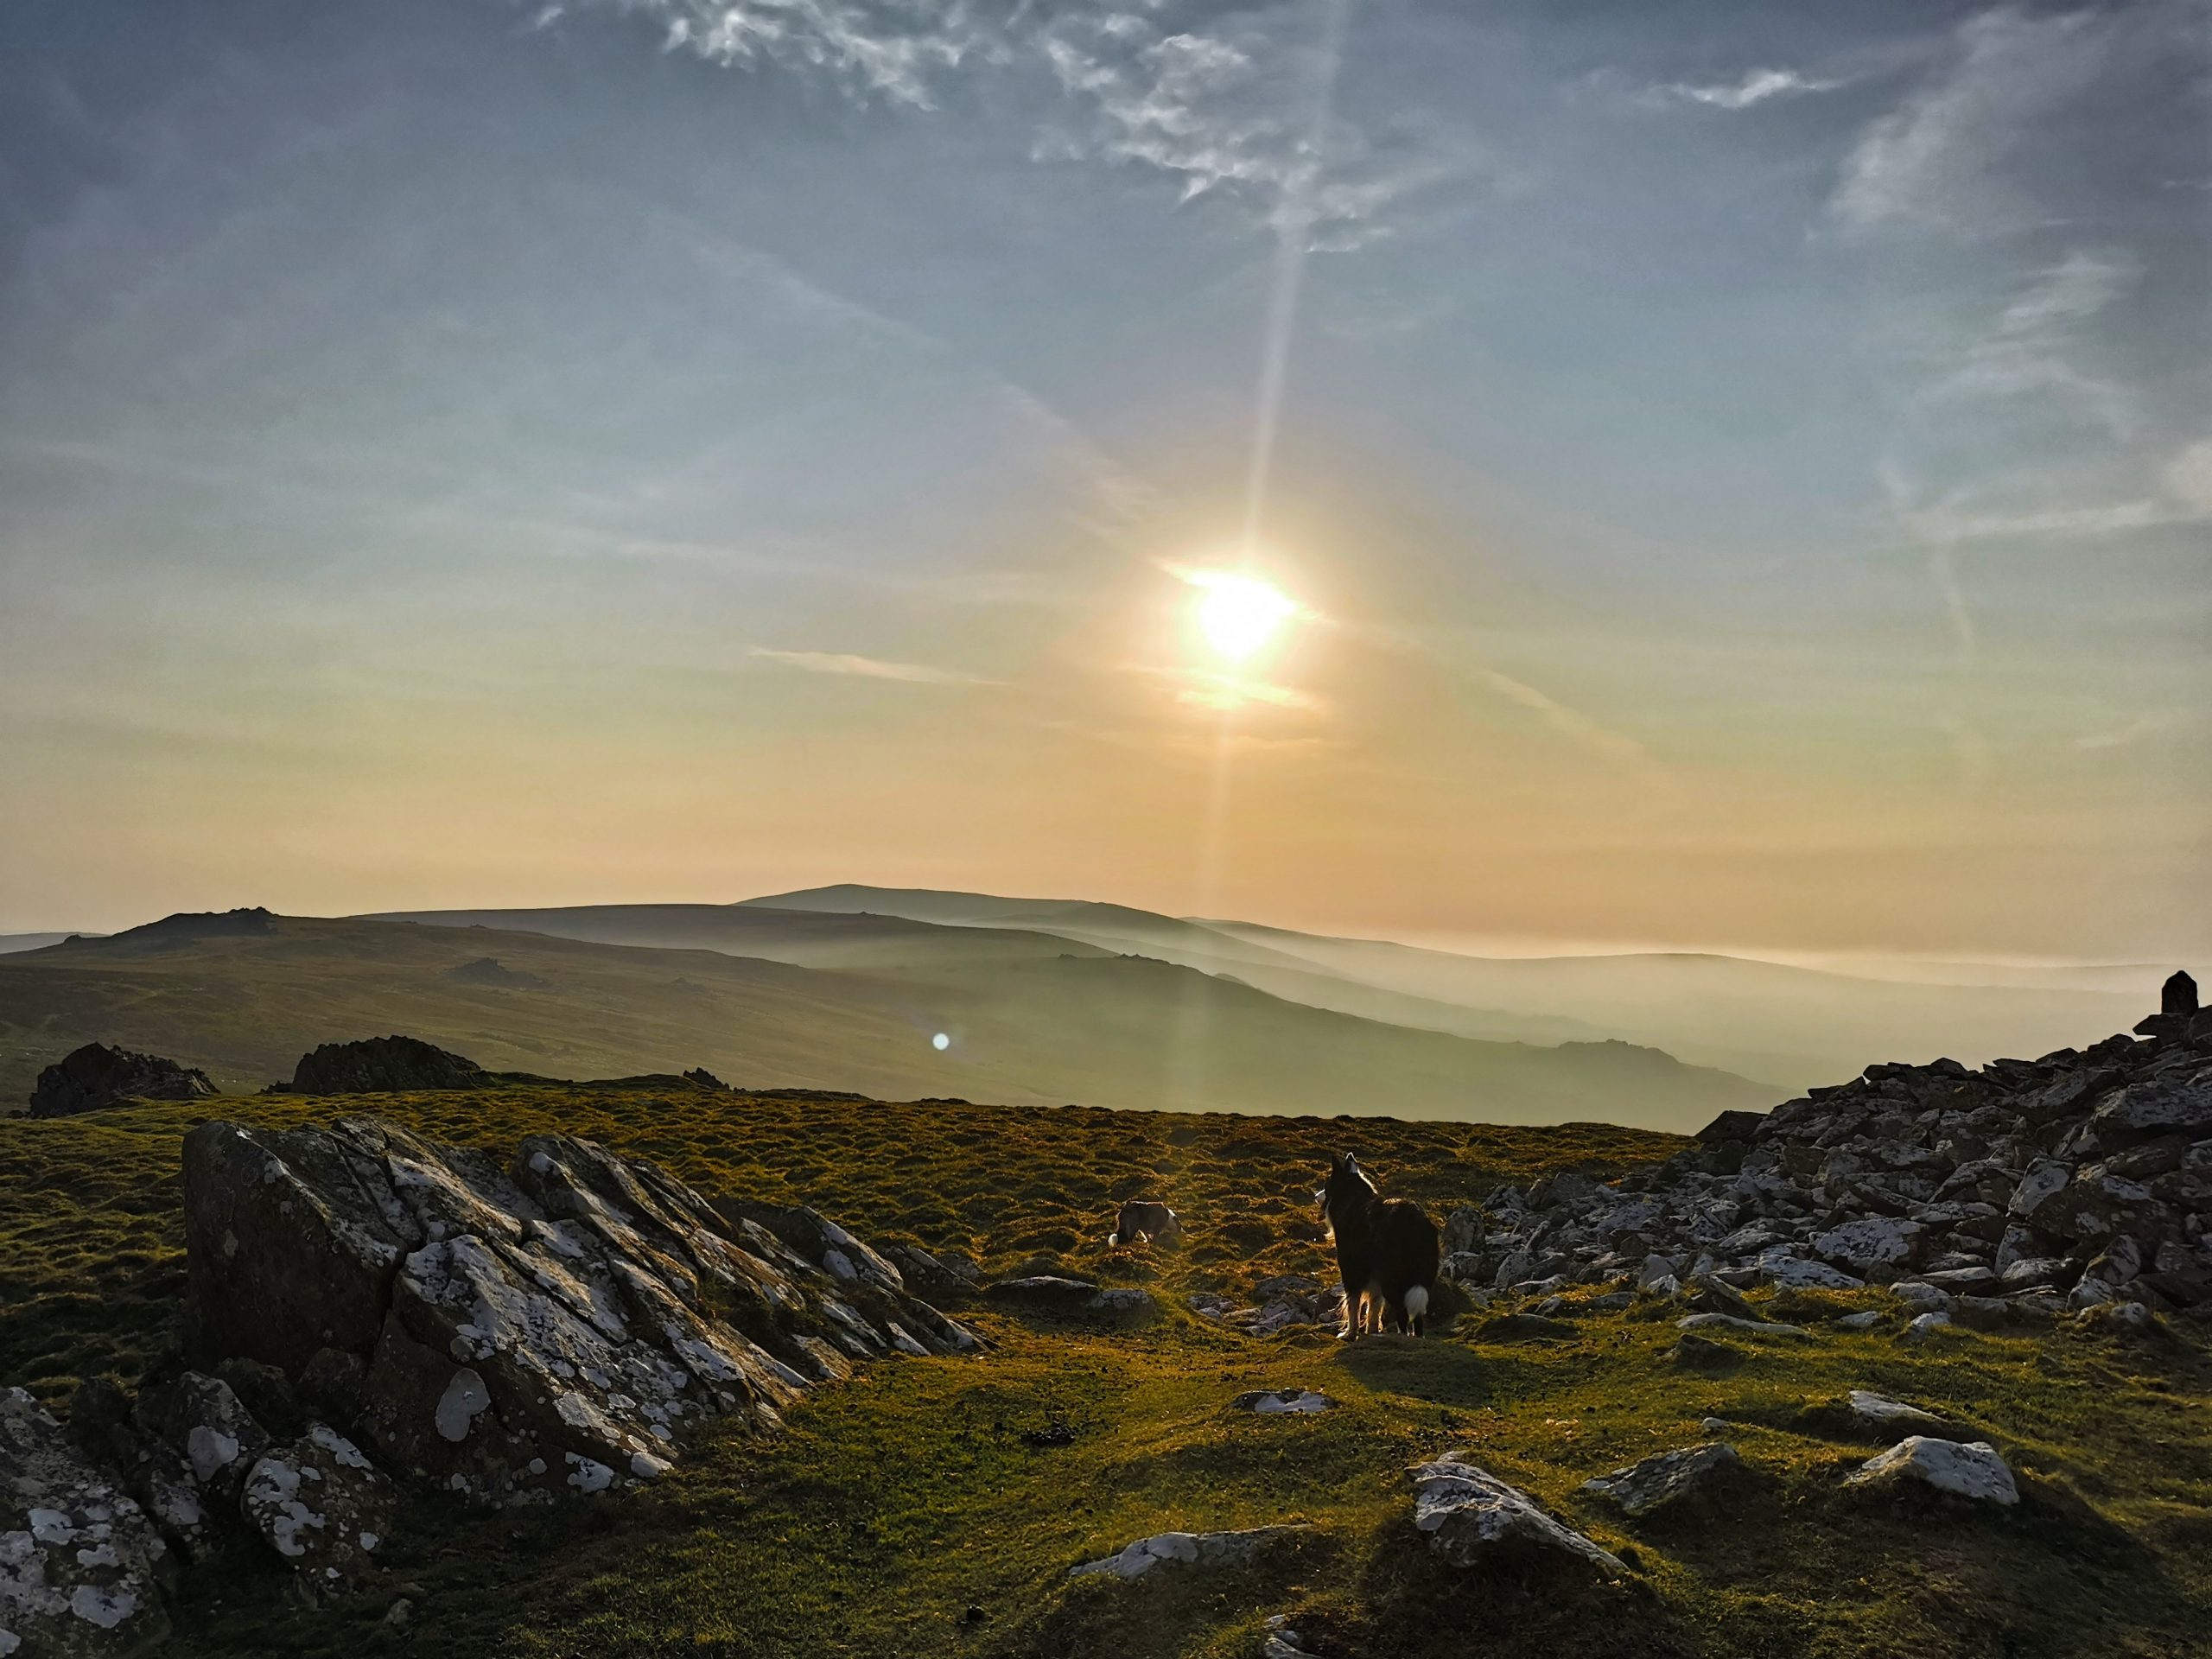 Foel Drygarn at sunset taken by Sophie Jenkins